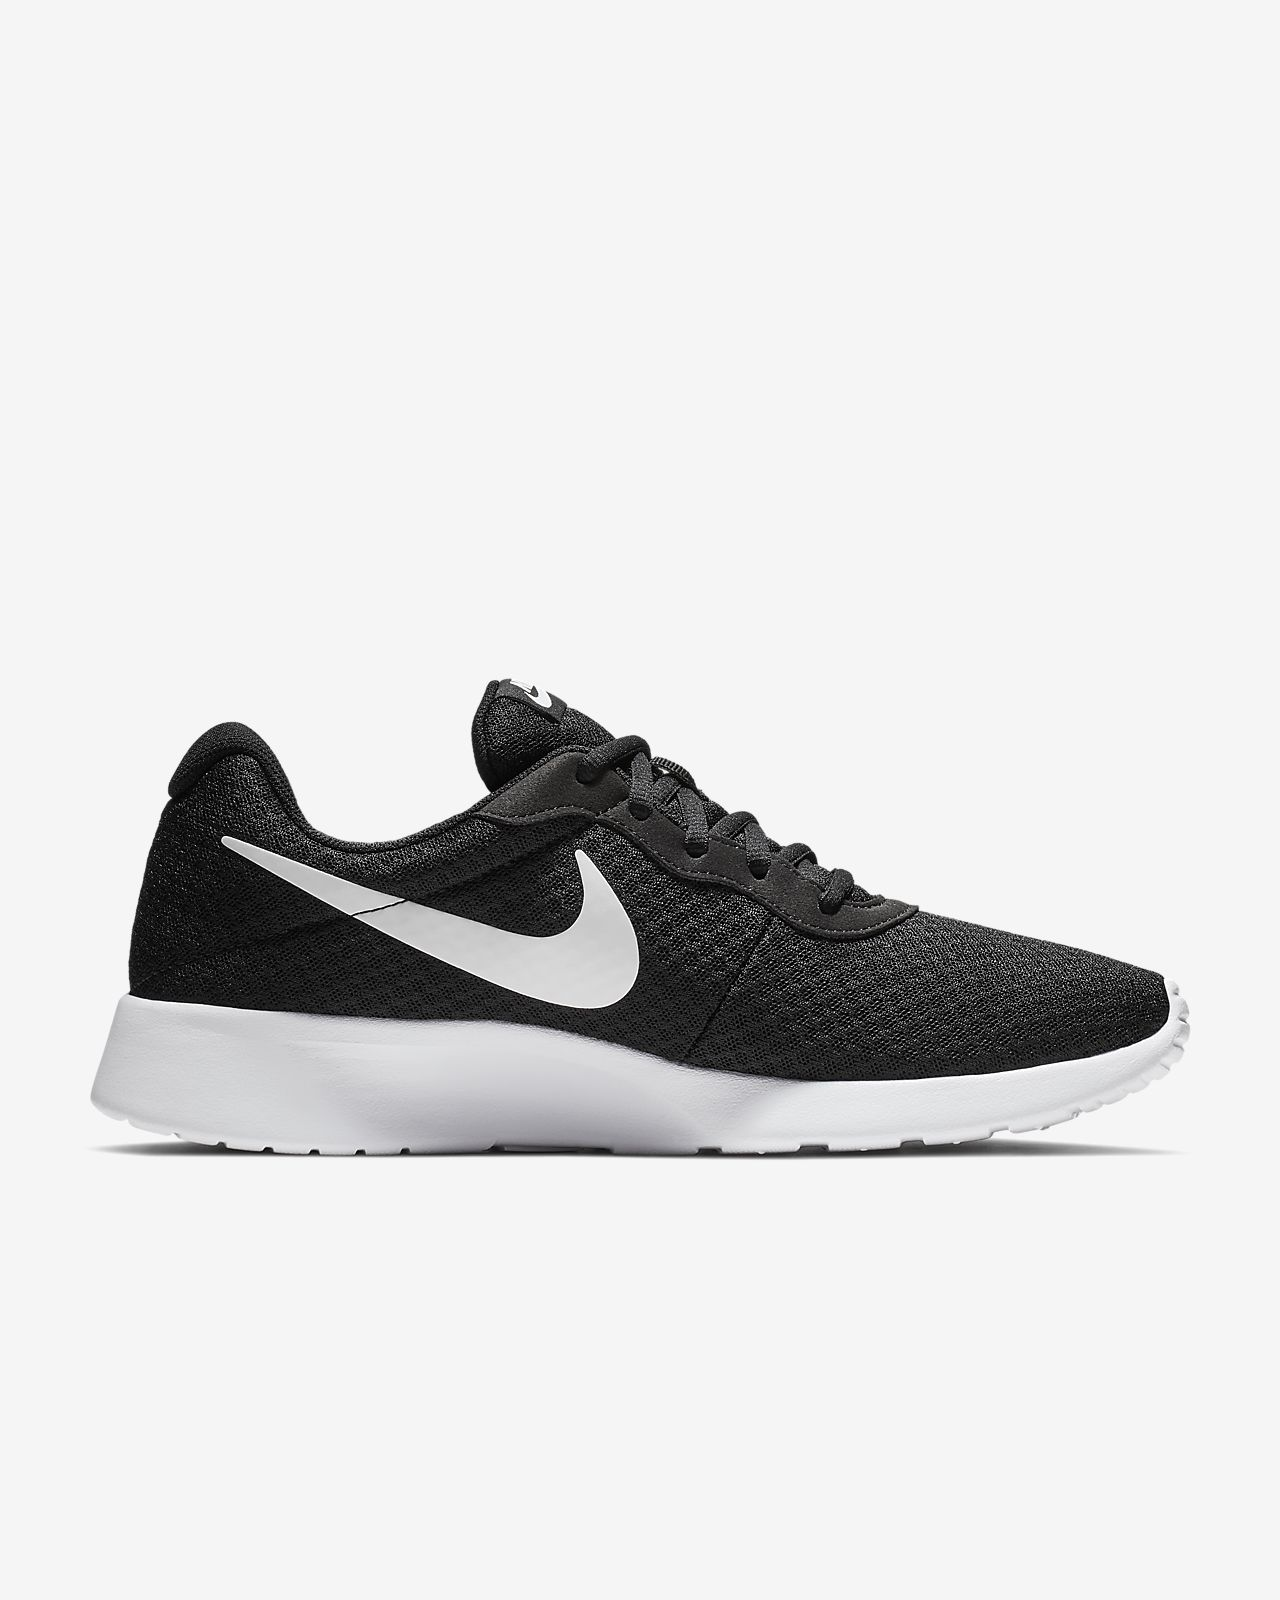 Chaussures Nike noires Casual homme LYJFwI93